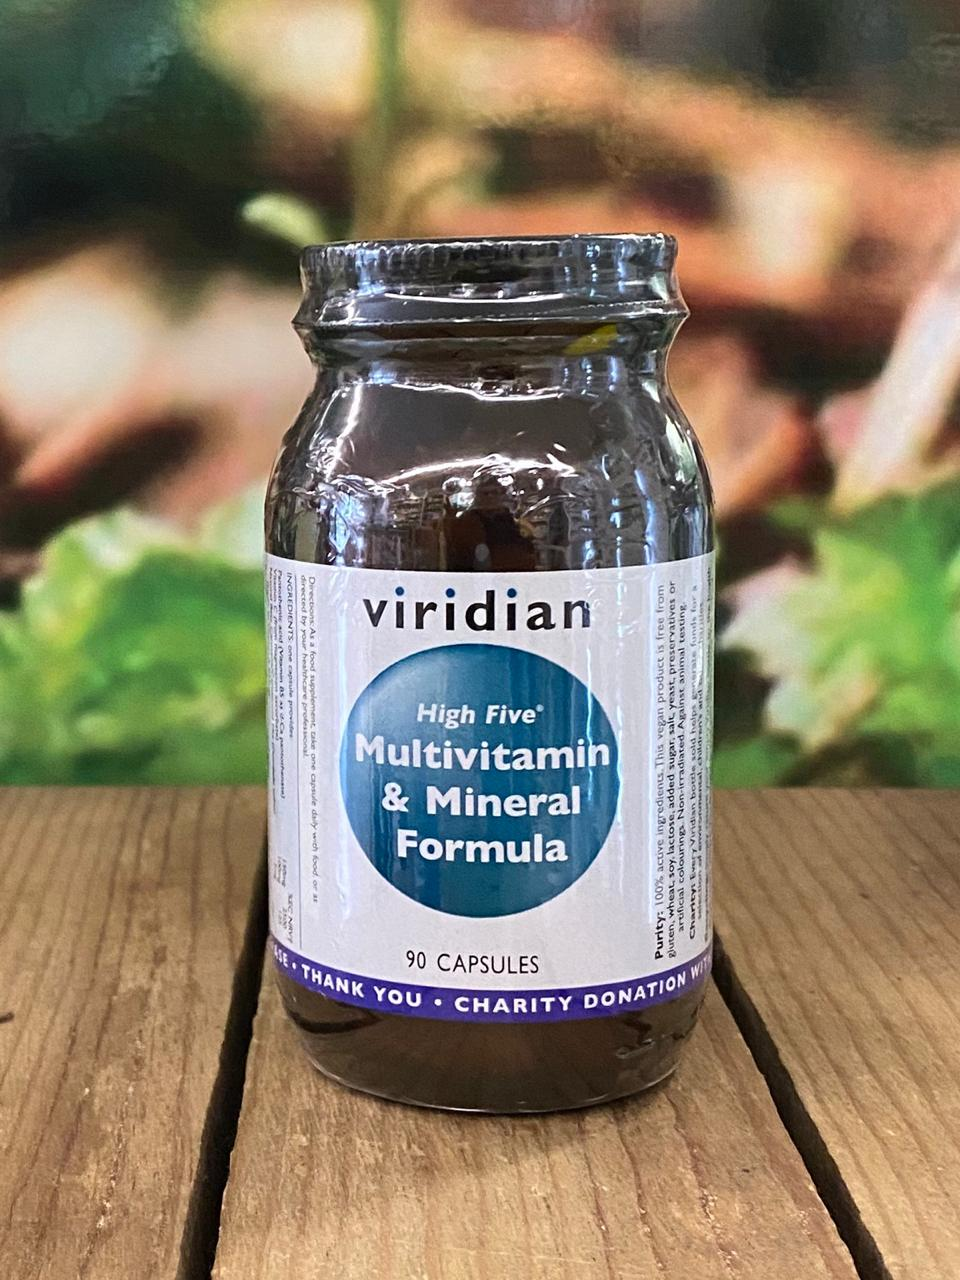 Viridian Multivitamin and Mineral Formula 90 capsules